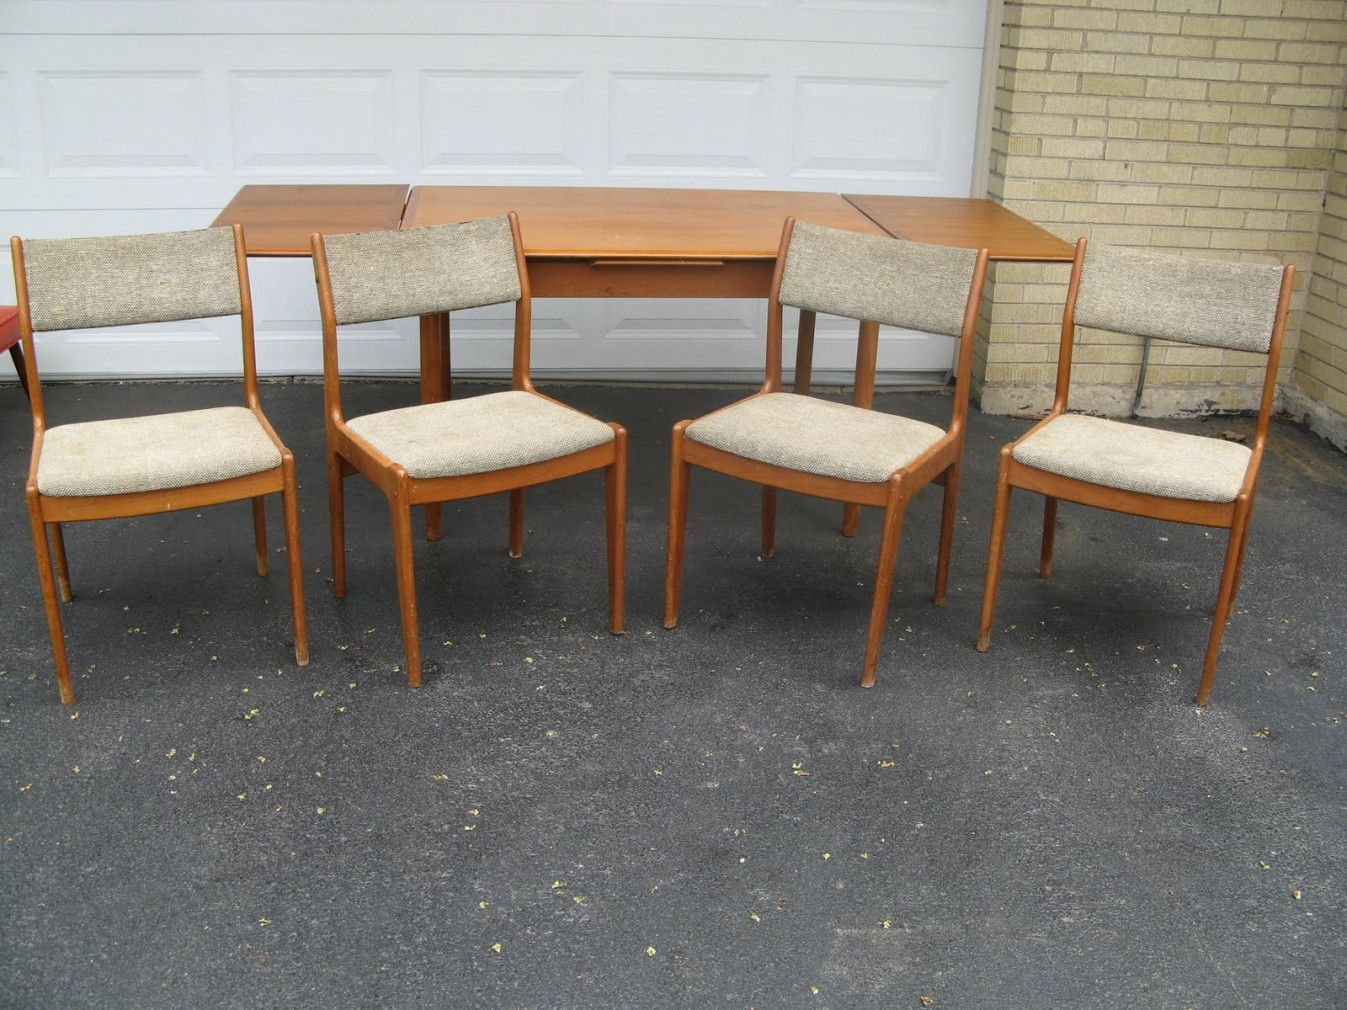 50 Teak Dining Chairs Indoor Modern Vintage Furniture Check More At Http